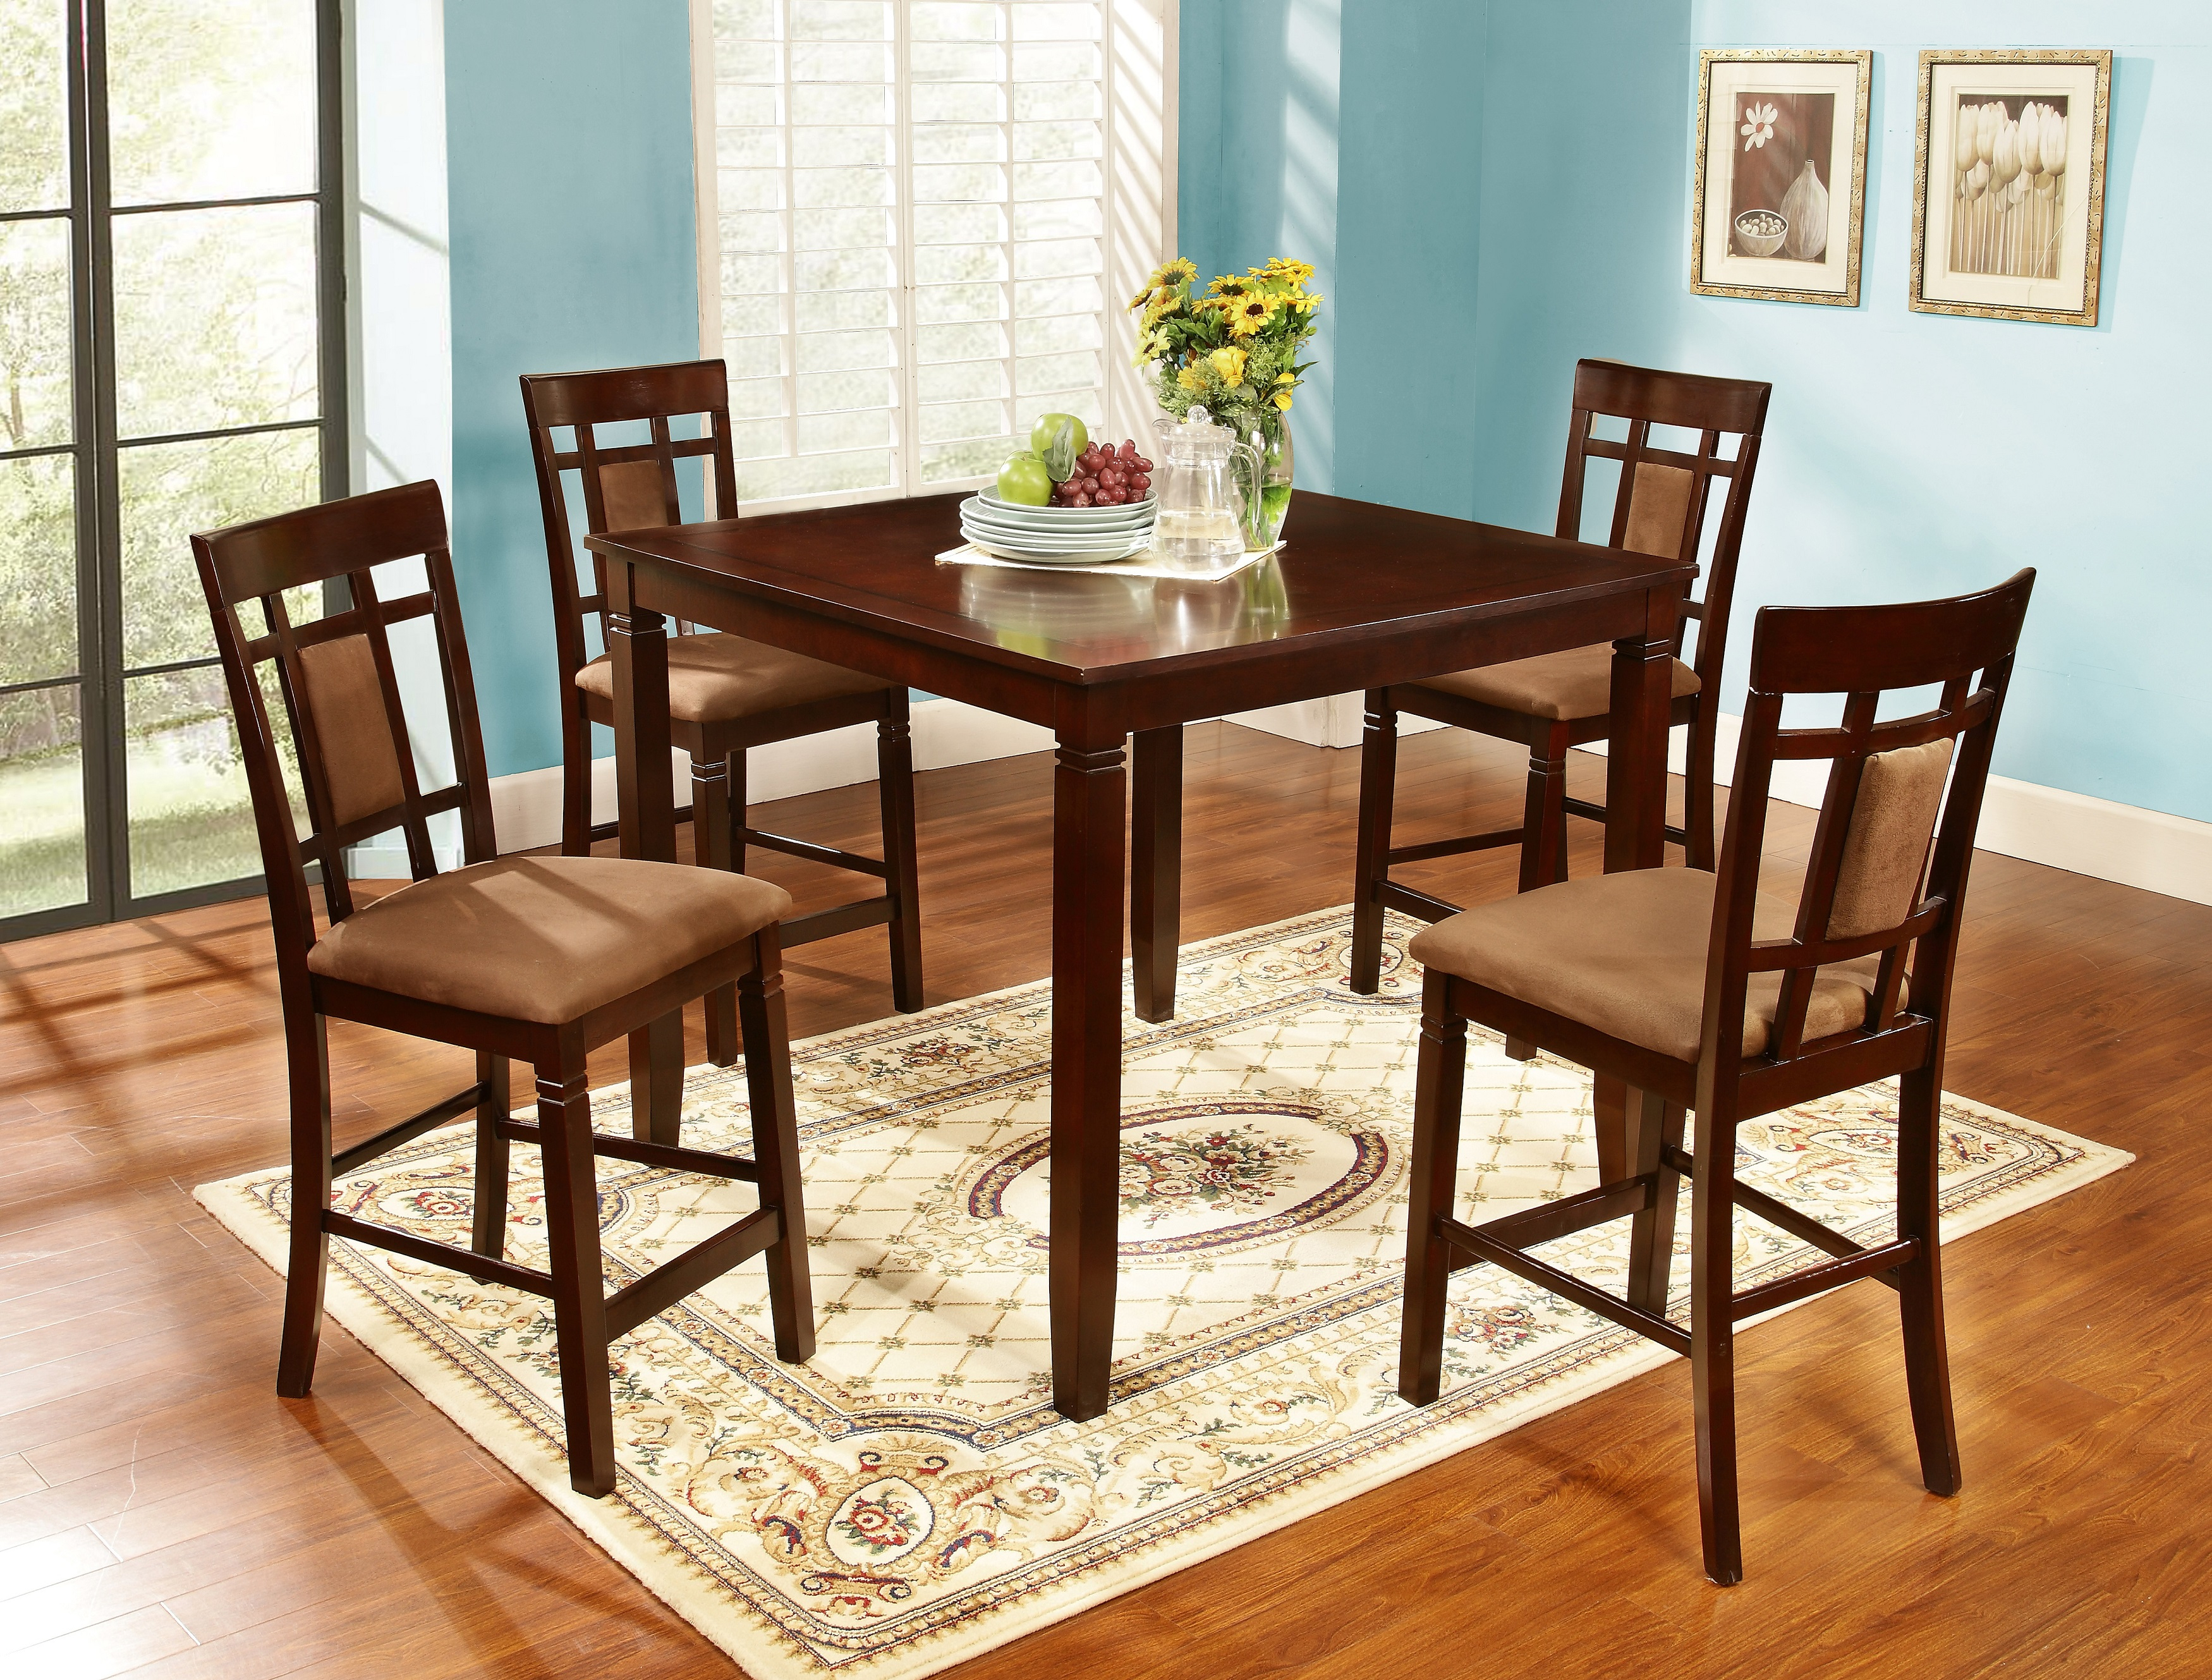 Bryson 5 Piece Dining Sets Throughout Current Bryson 5 Pcs Dining Set – Walmart (#6 of 20)